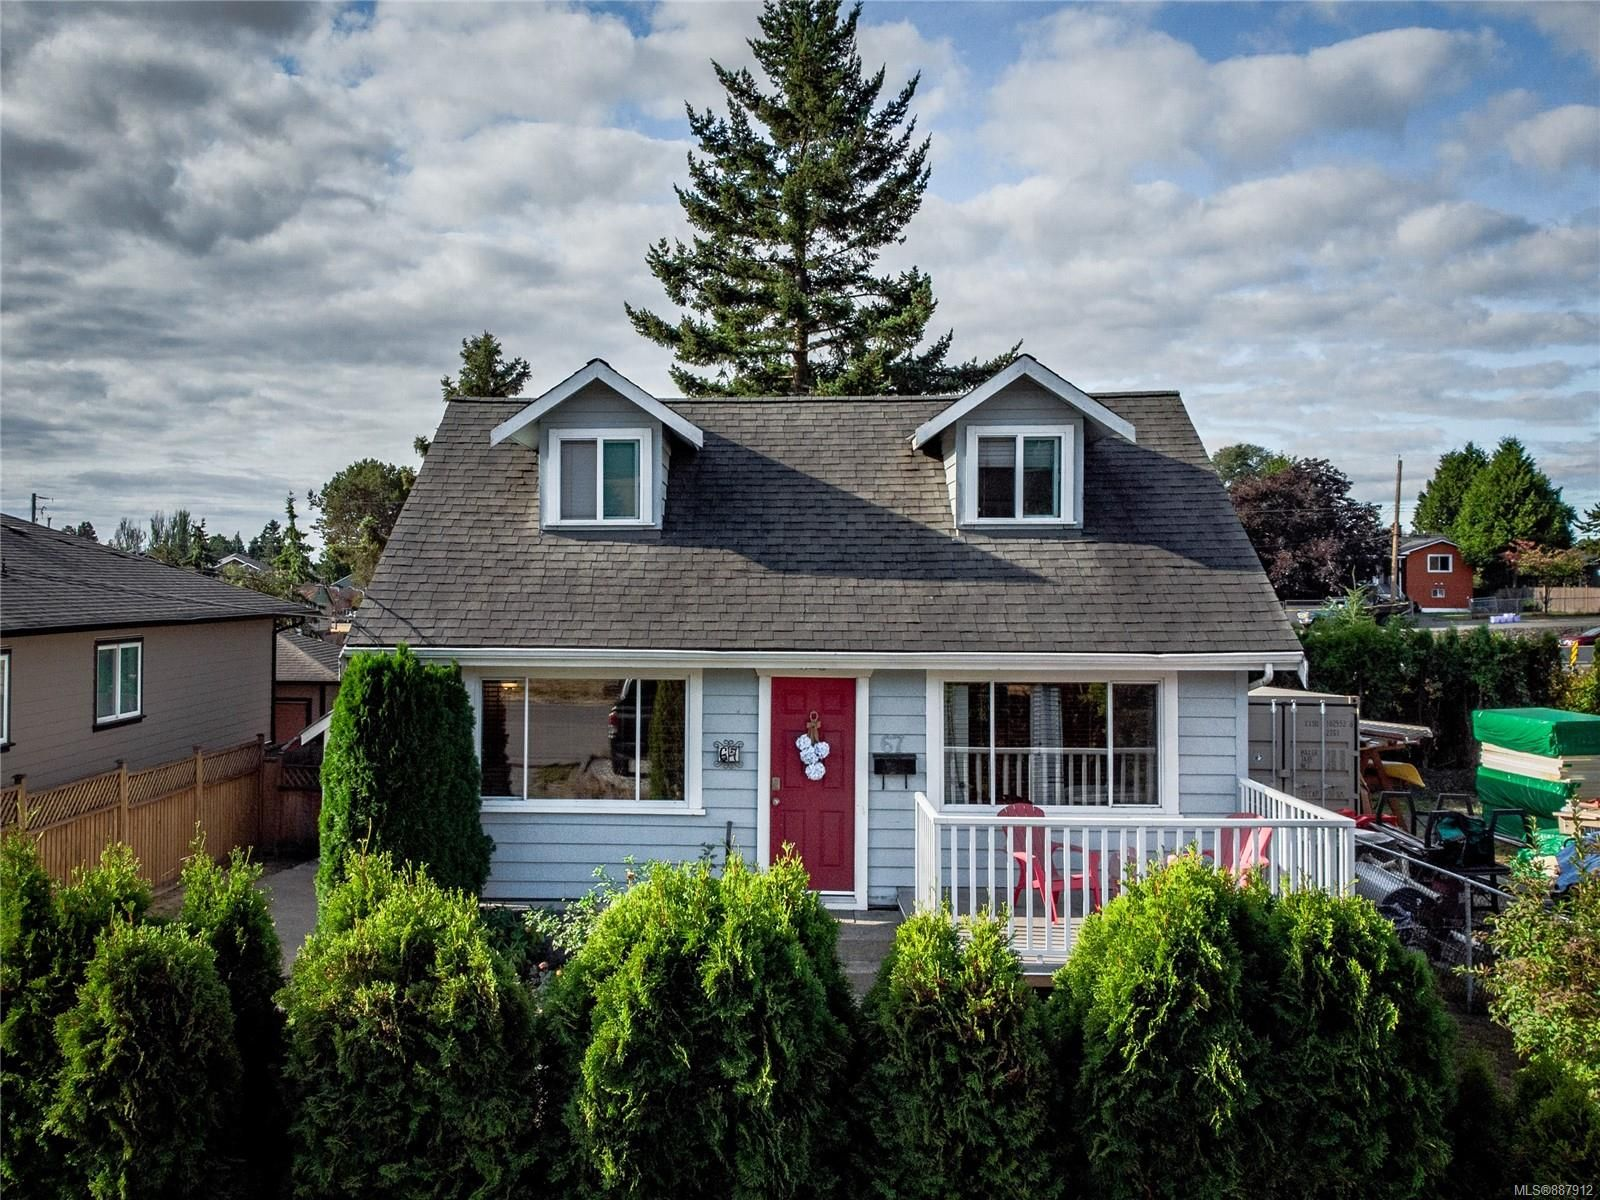 Main Photo: 67 Crease Ave in : SW Gateway House for sale (Saanich West)  : MLS®# 887912